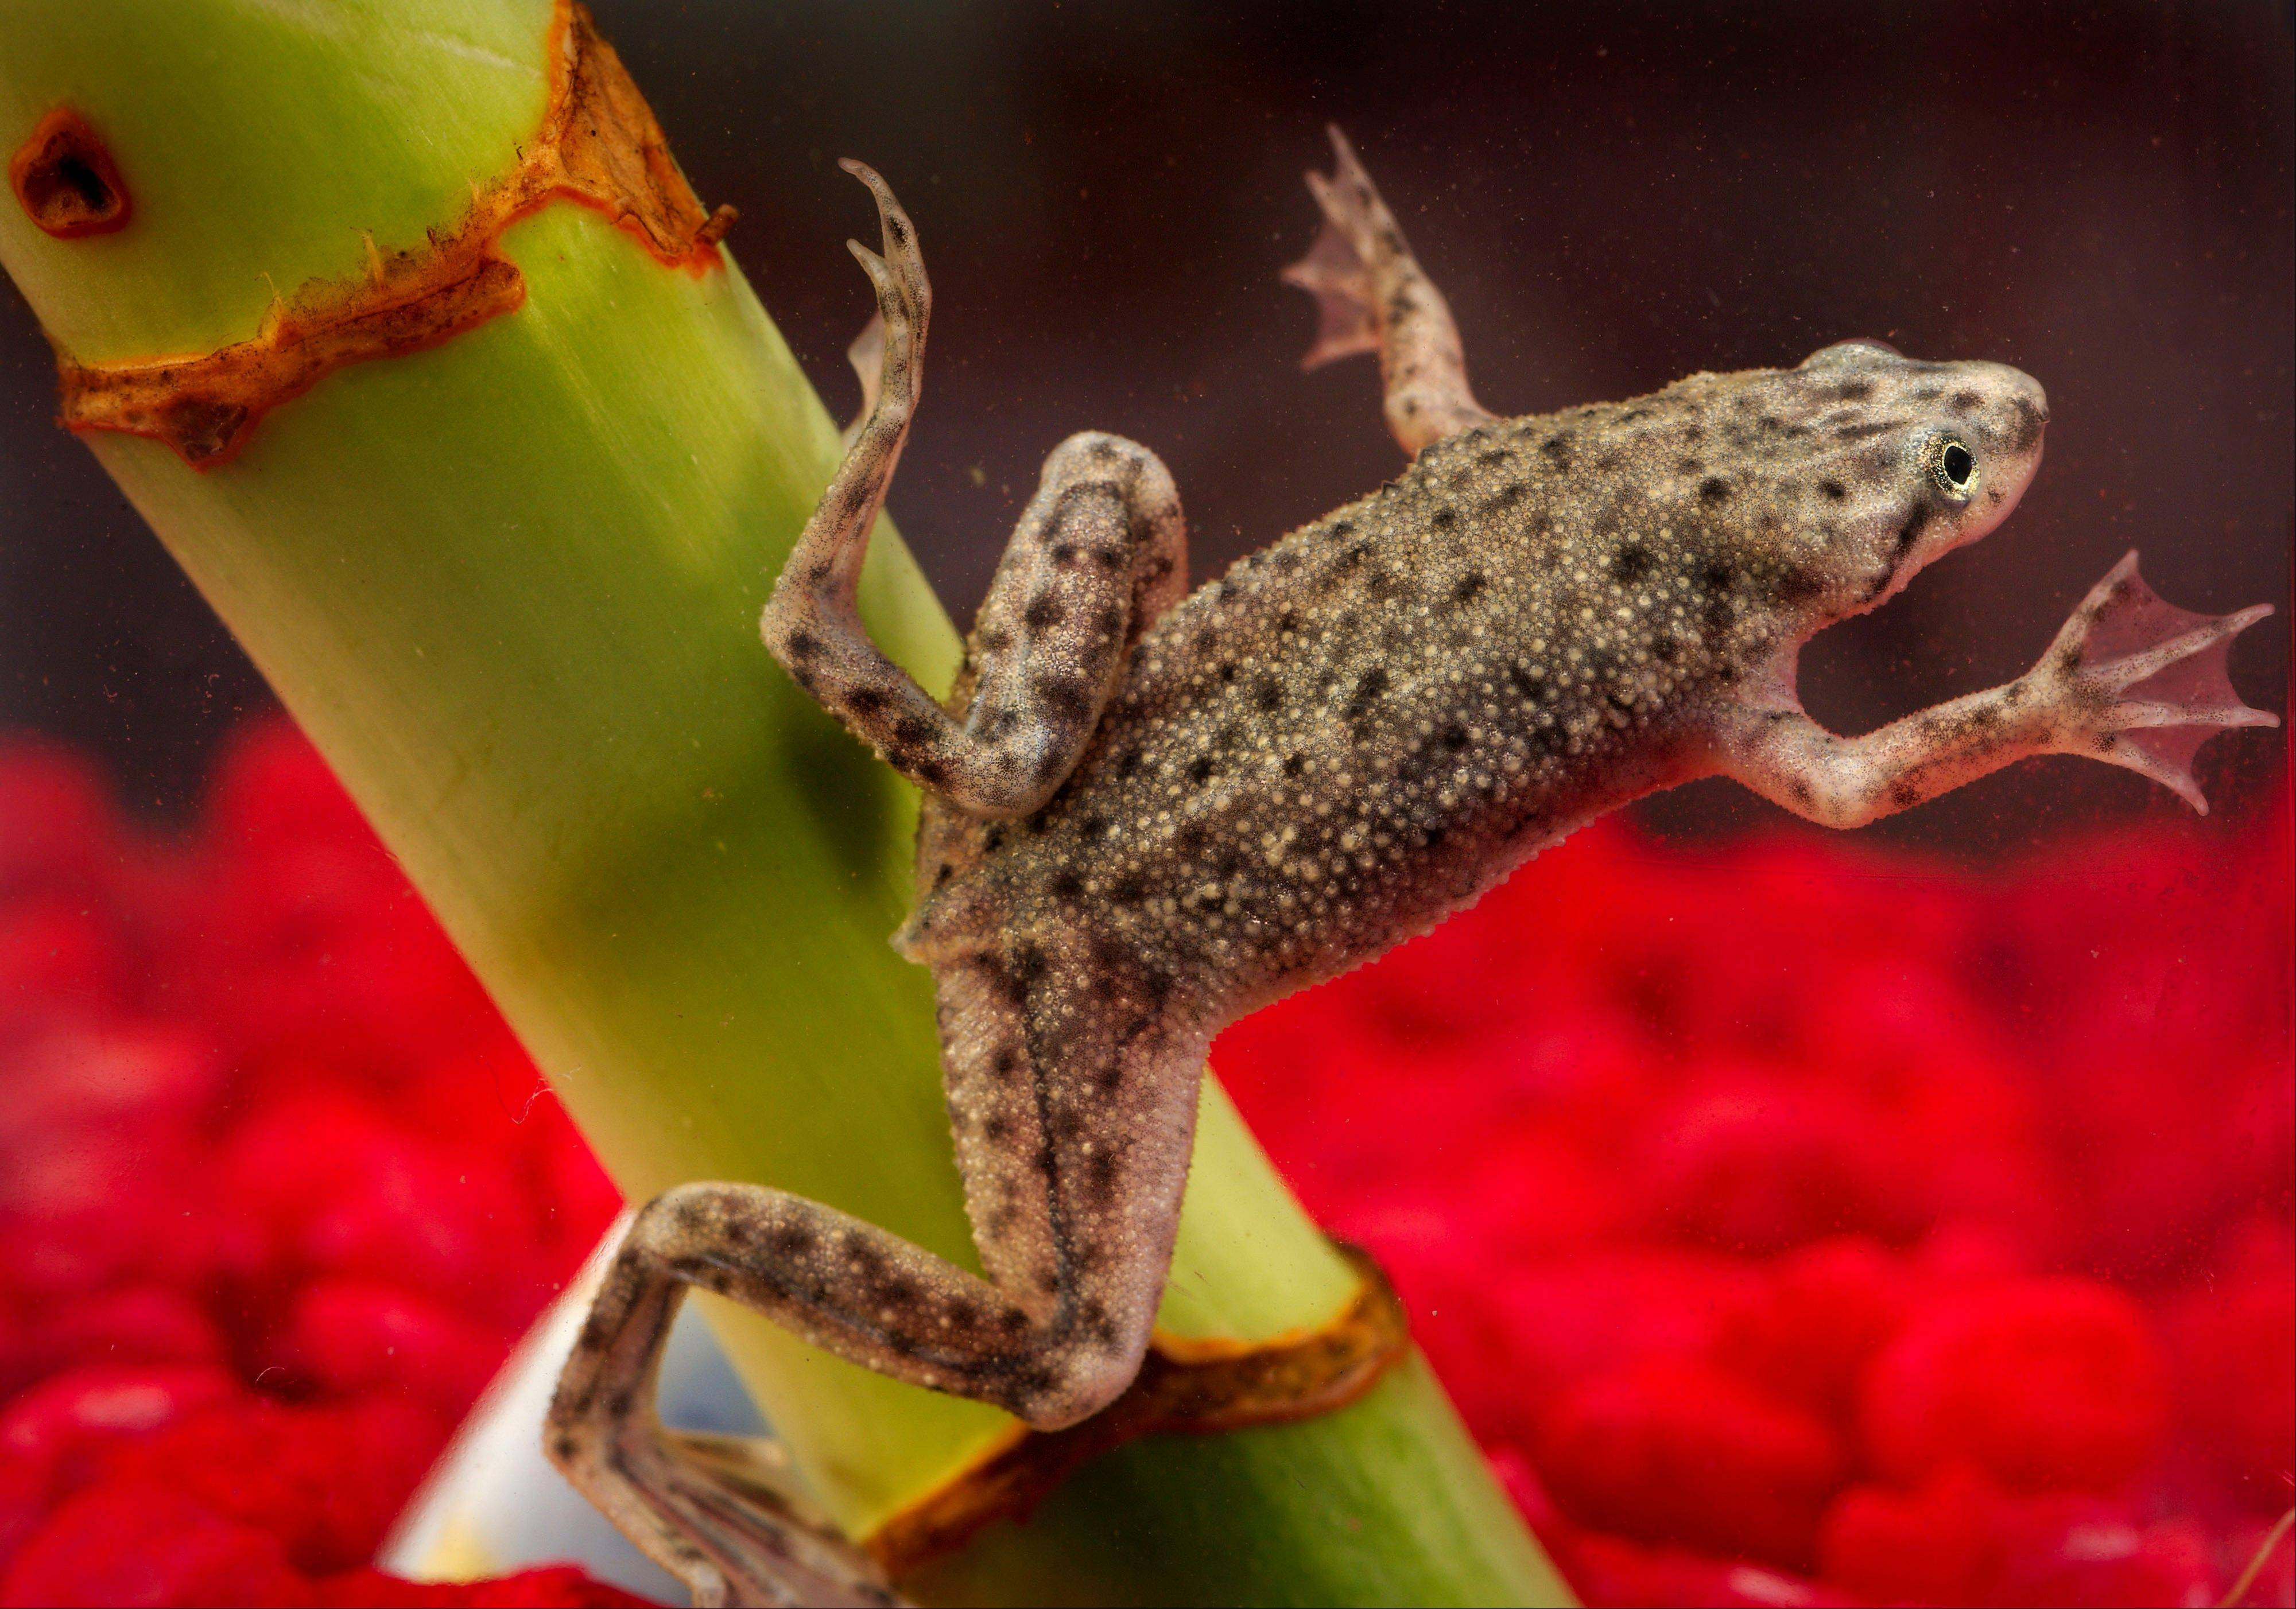 A government report released by the journal Pediatrics says that African dwarf frogs can carry salmonella.